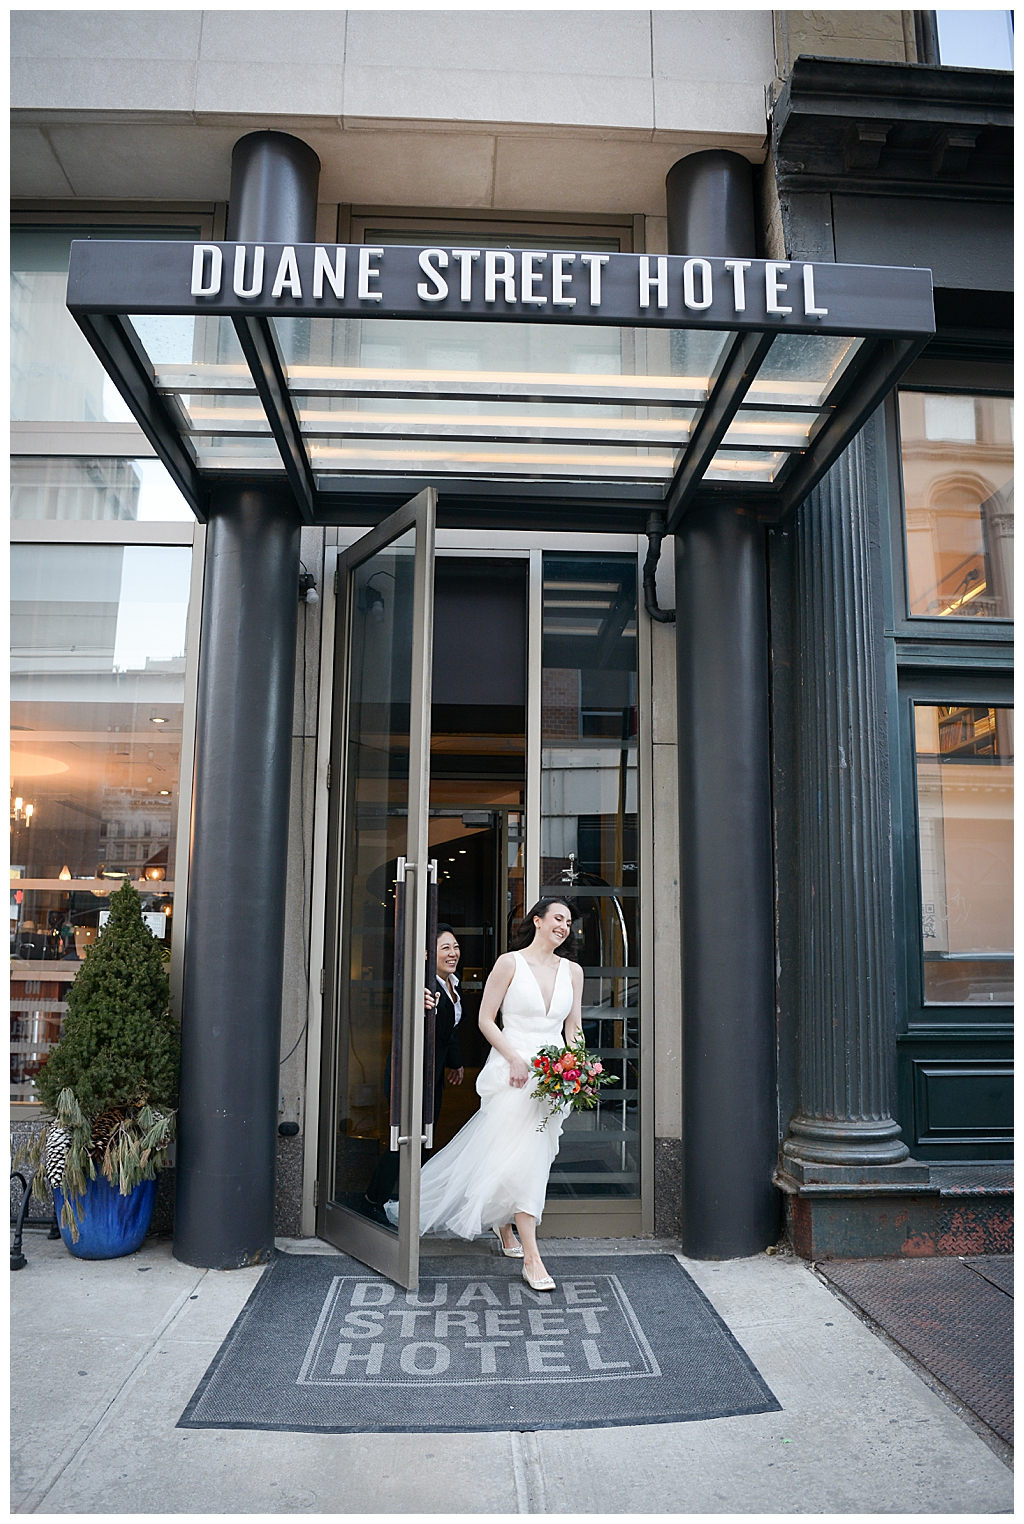 duane-street-hotel-wedding-photography